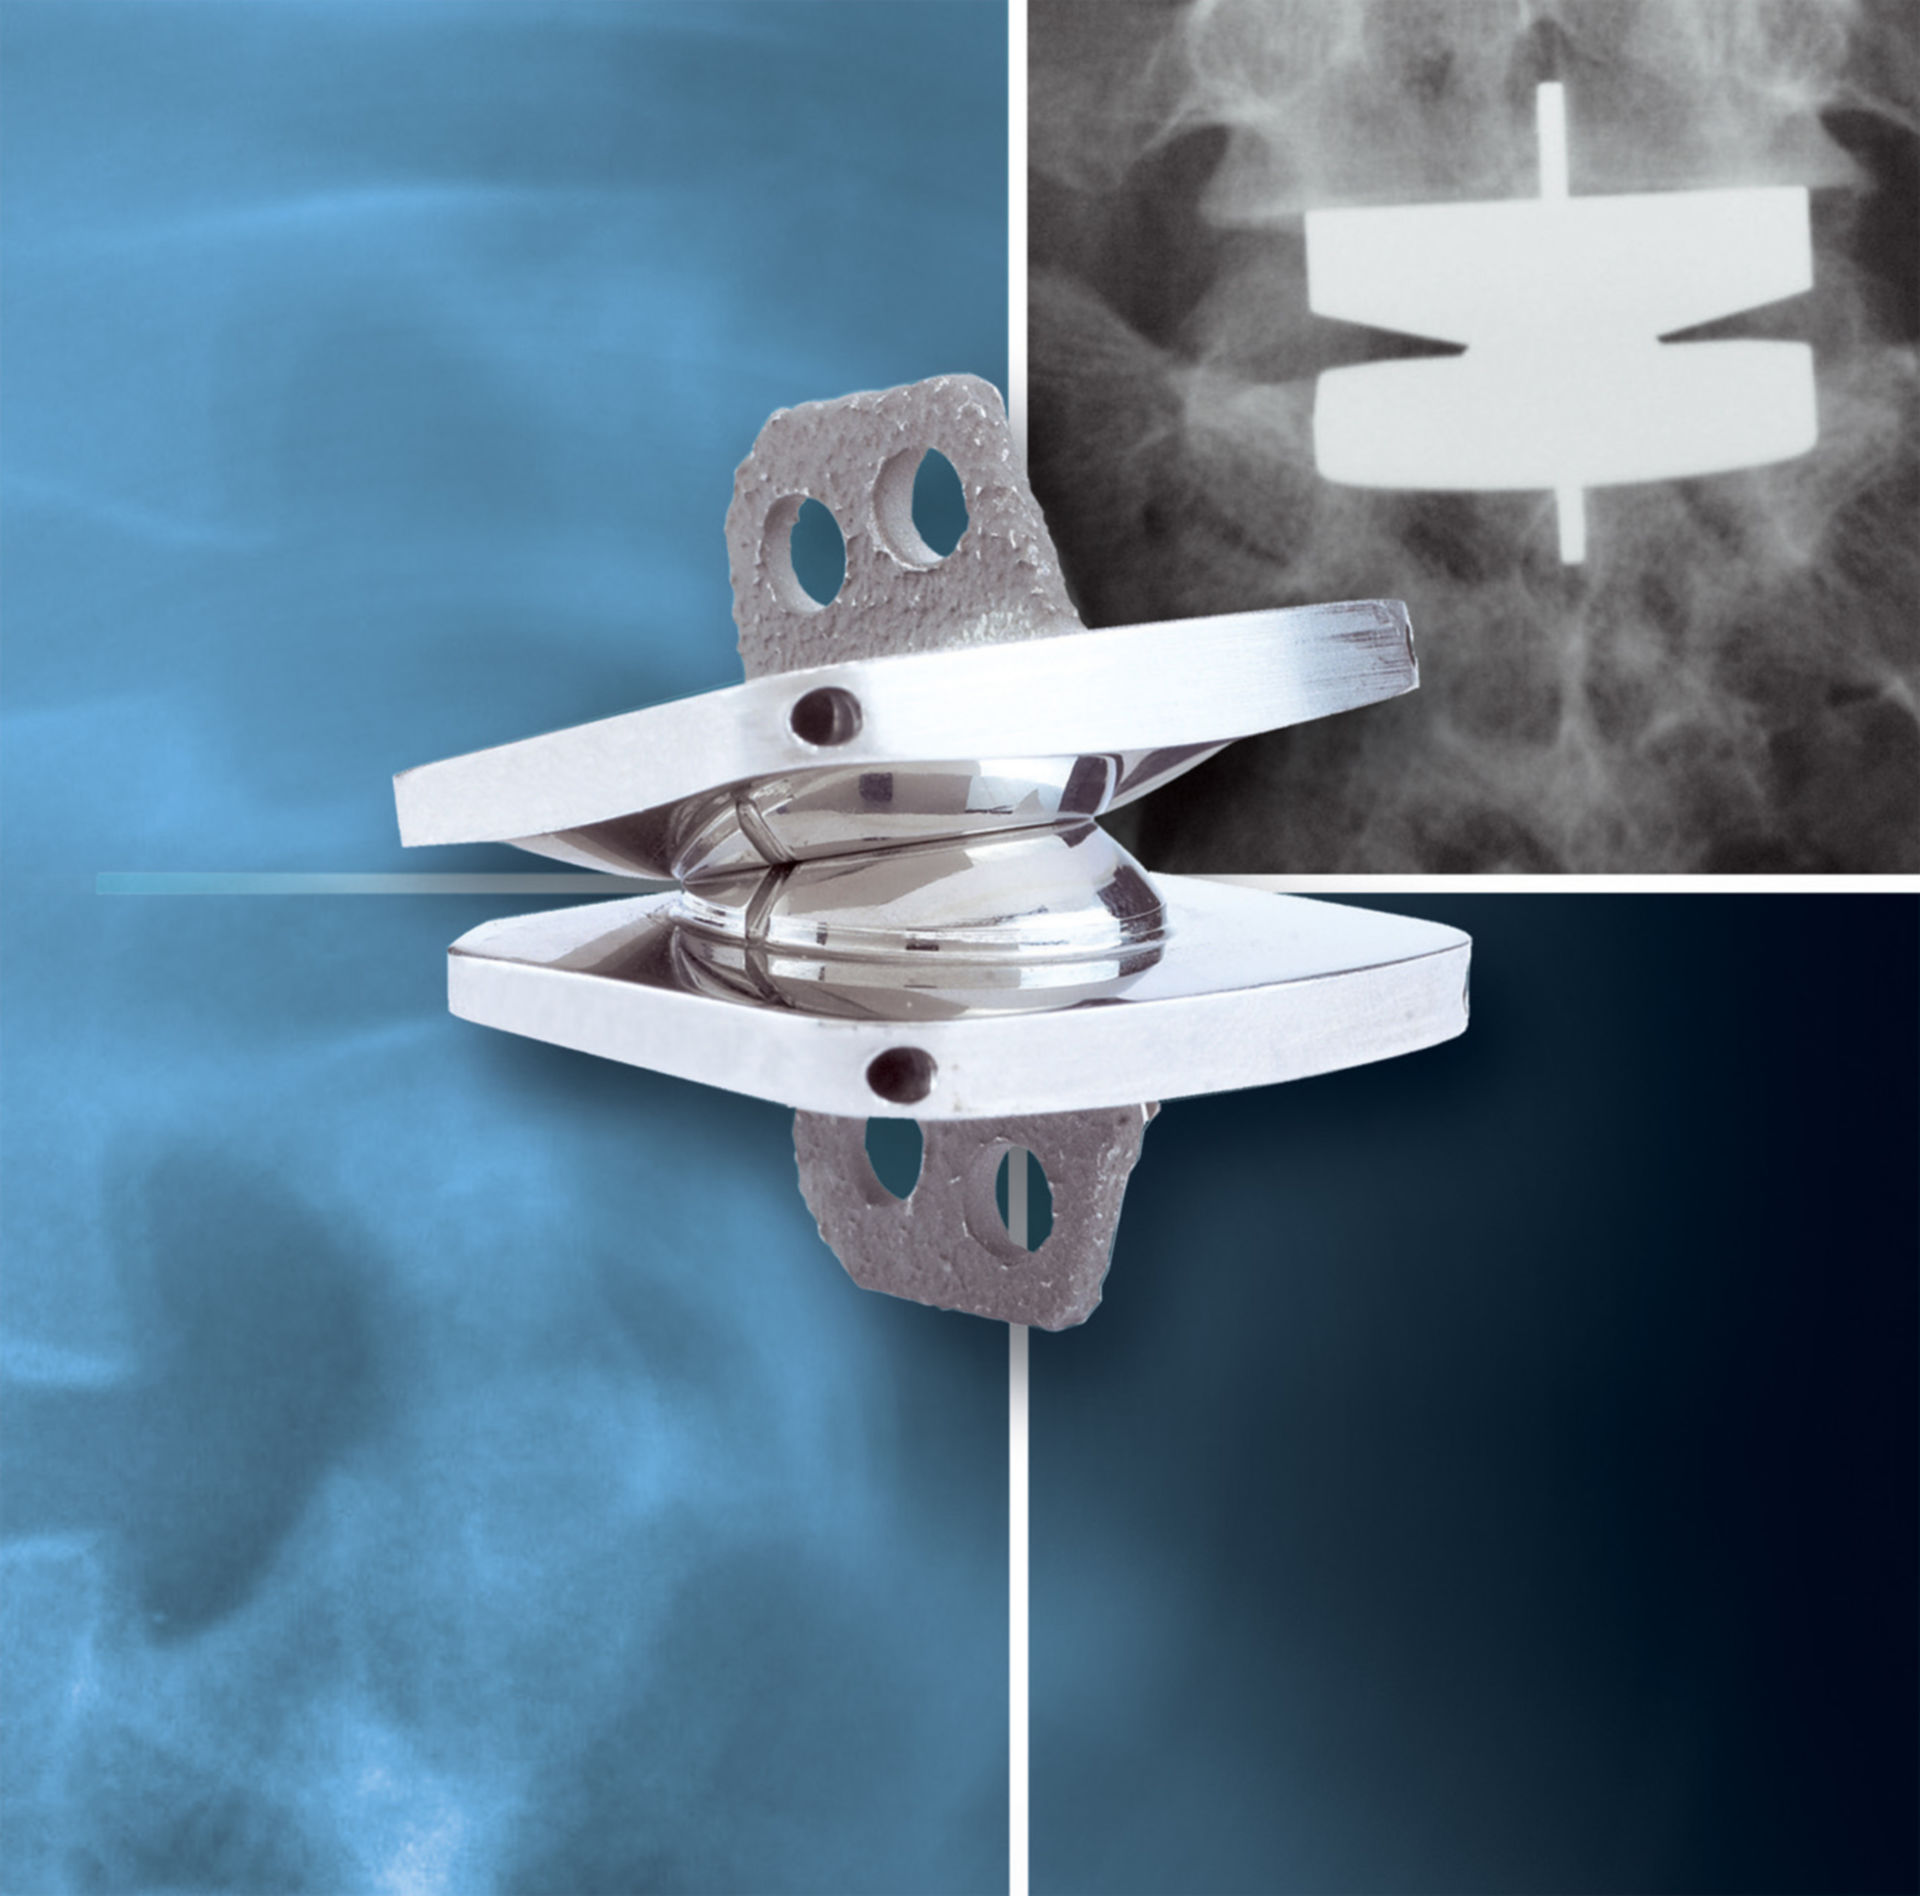 Spinal disk implant